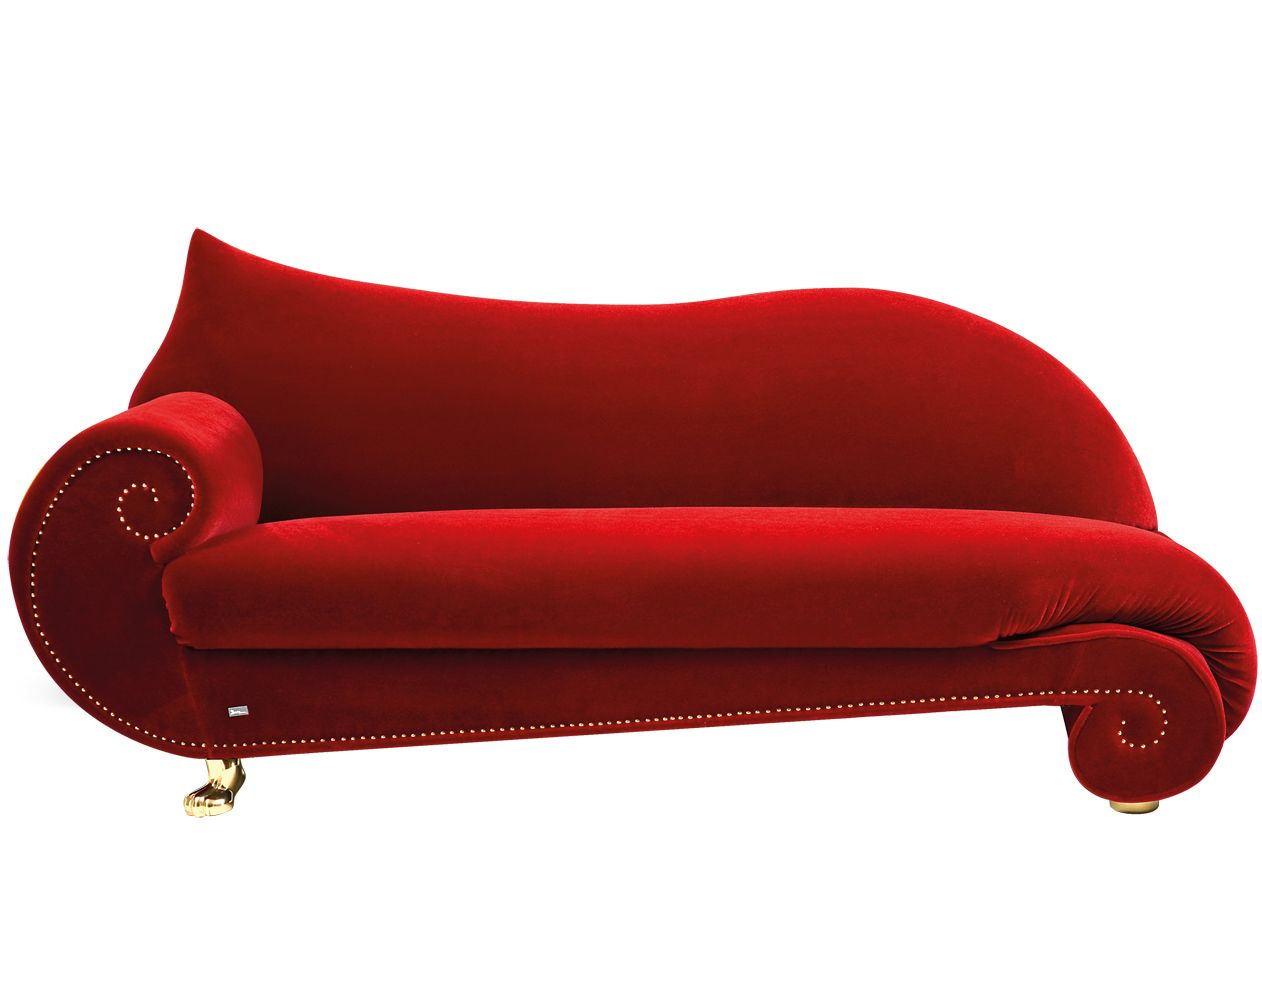 GAUDI Sofa from Bretz my absolut favorit sofa for my rockhome ...